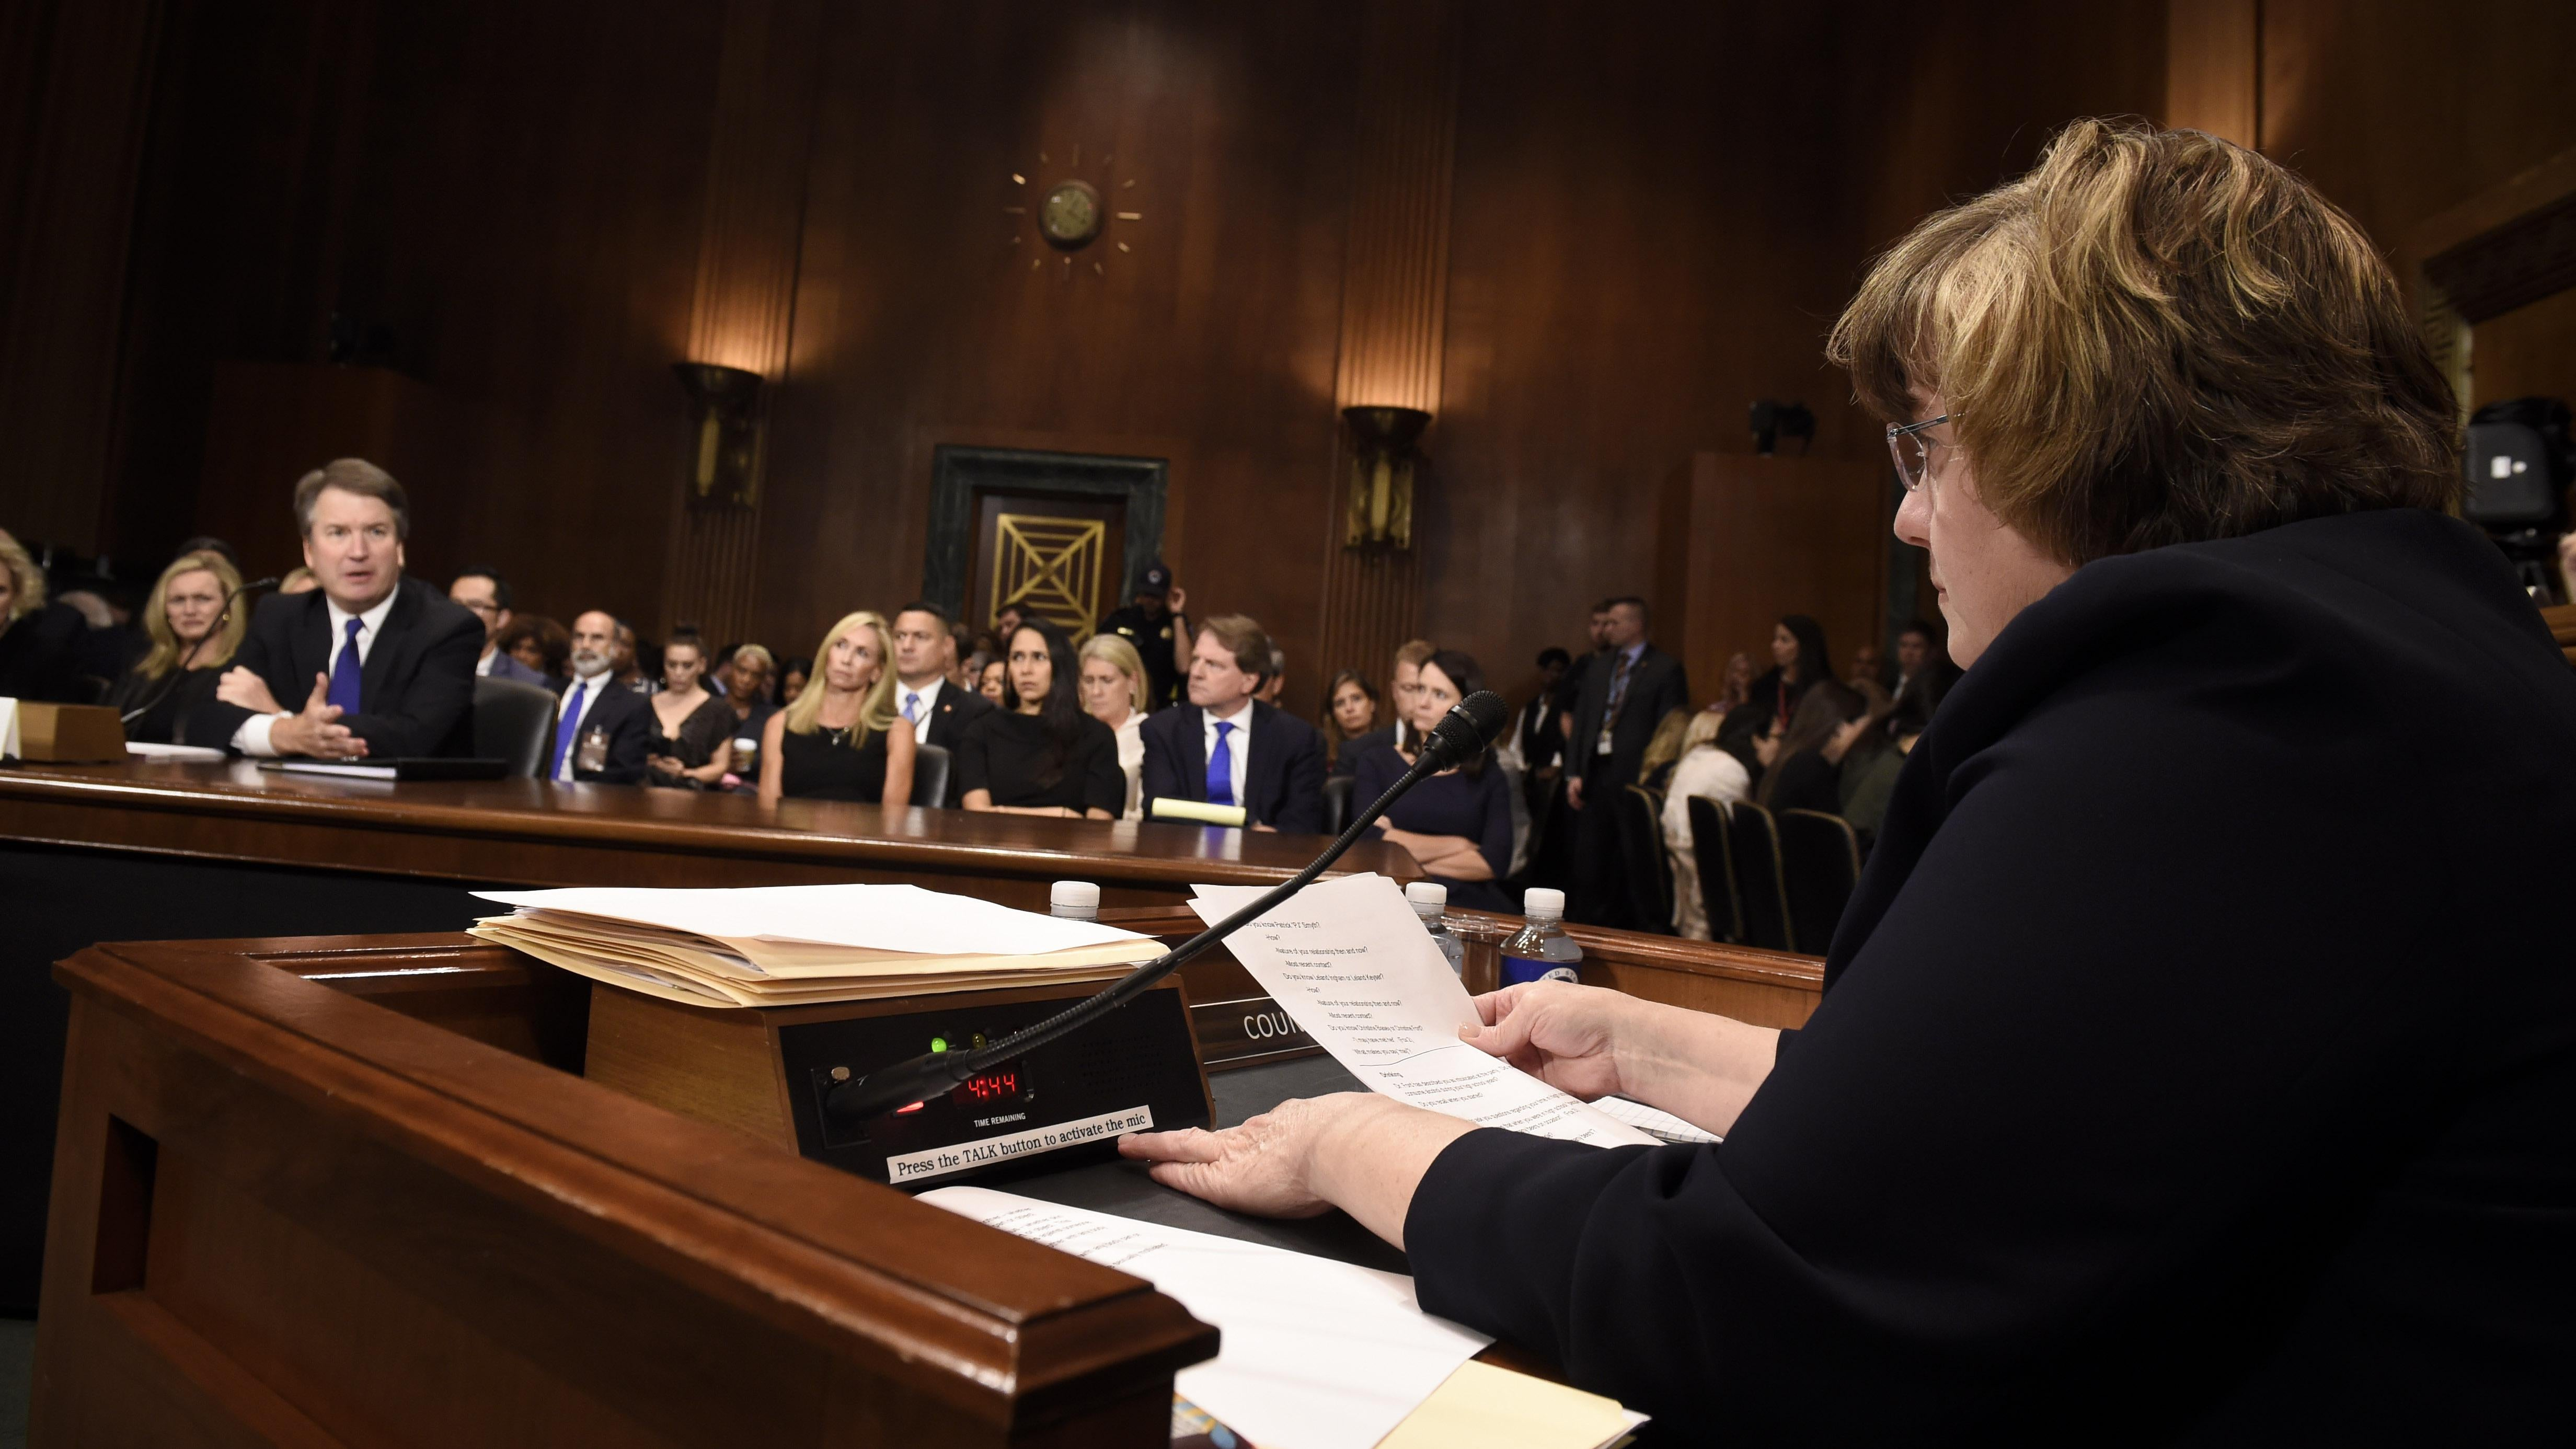 Mitchell questioning Kavanaugh before the Senate Judiciary Committee.